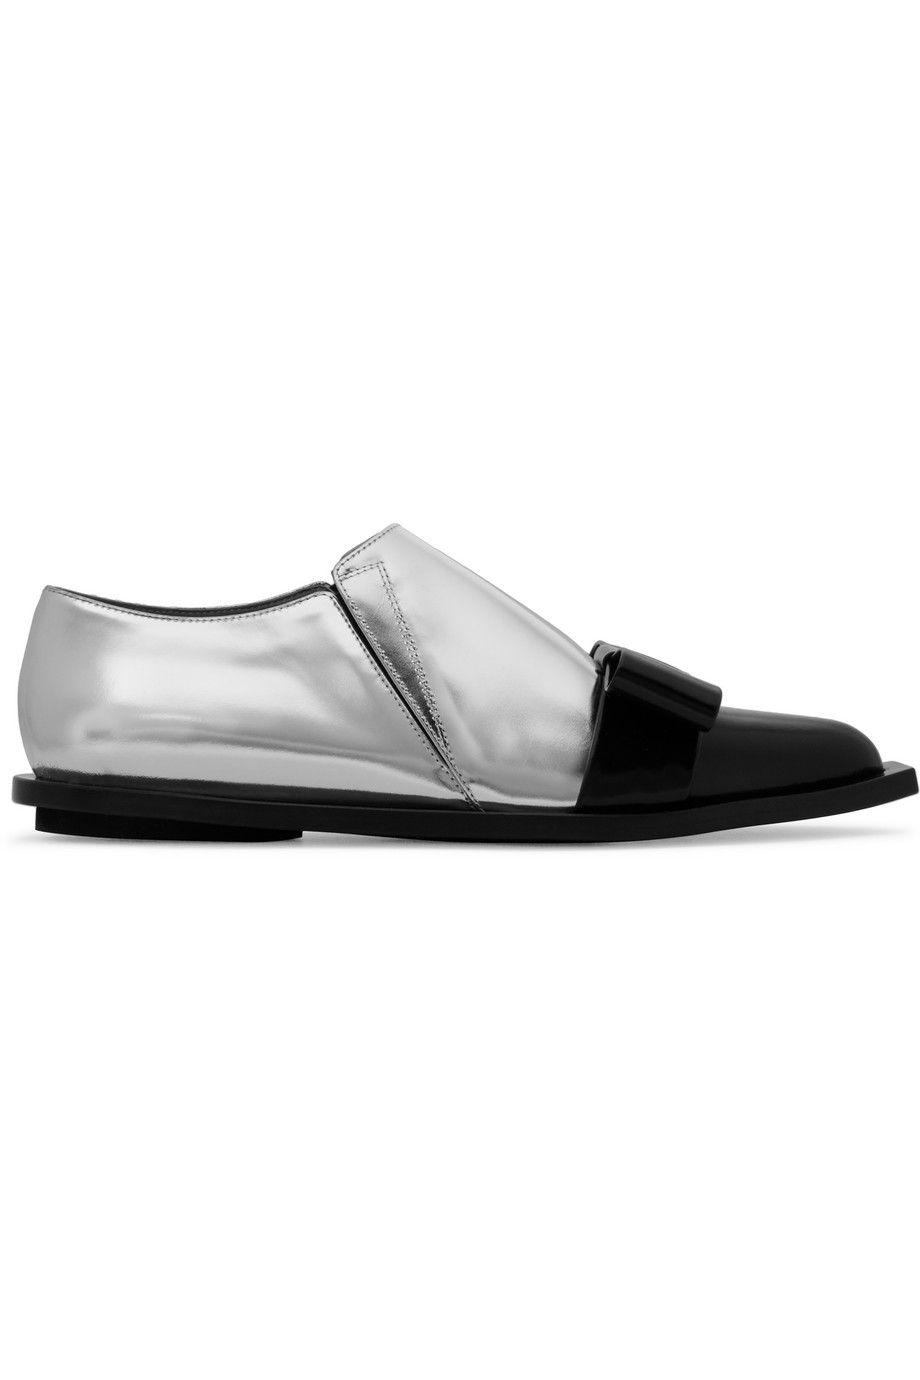 Marni Bow-Embellished Glossed-Leather Loafers, Silver, Women's US Size: 6.5, Size: 37